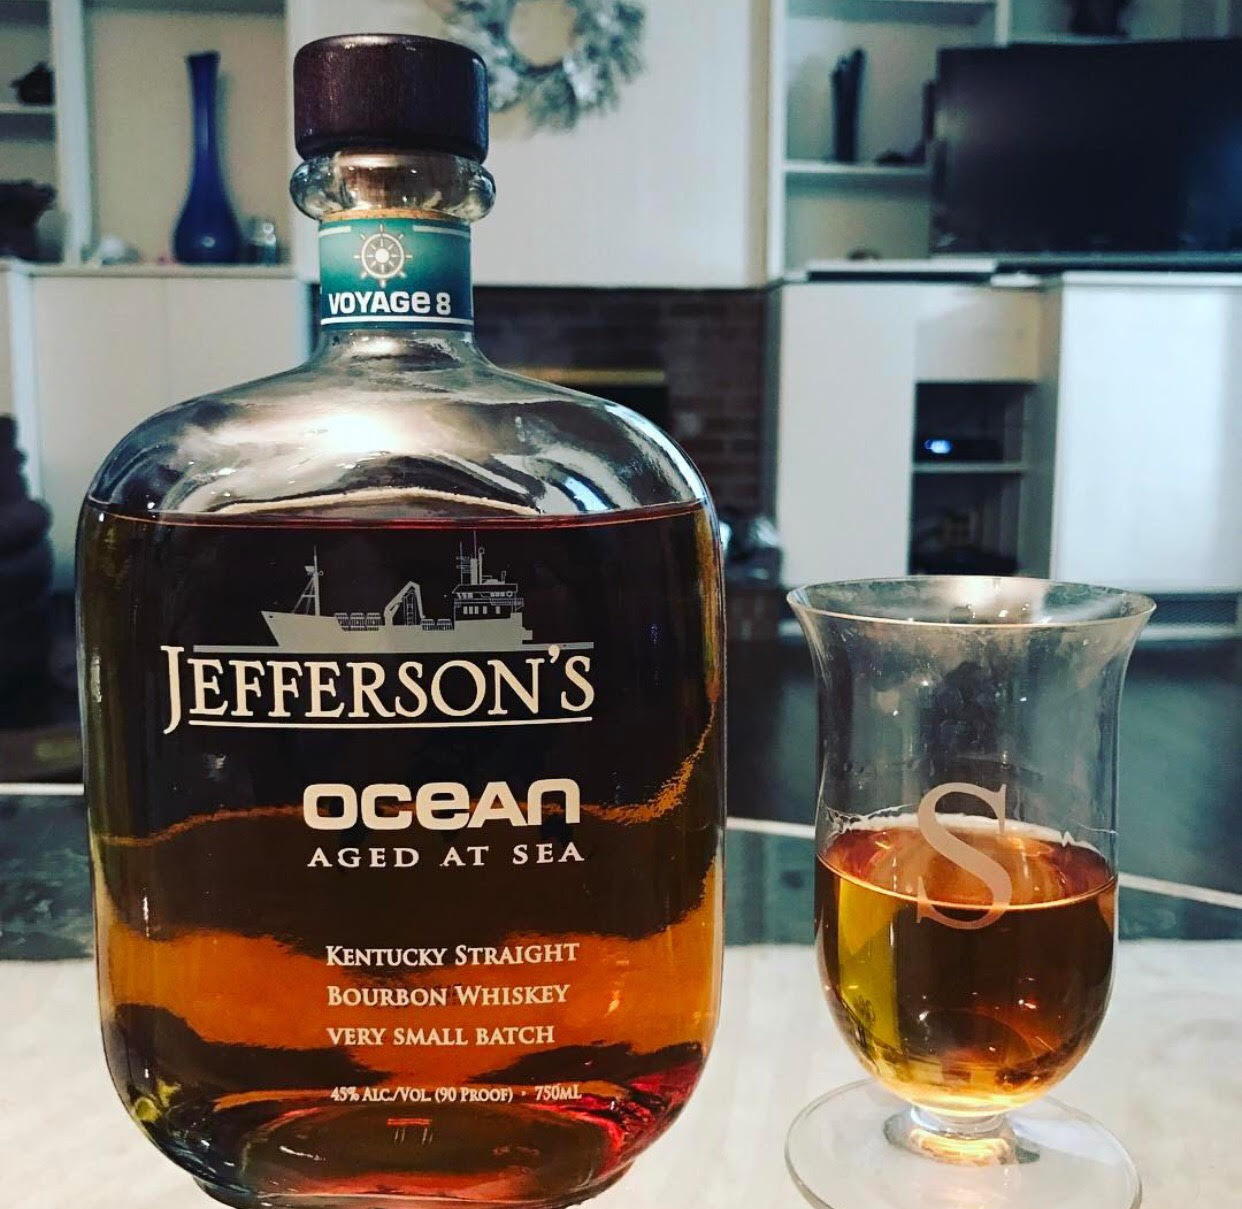 Guest Review: Jefferson's Ocean Voyage 8